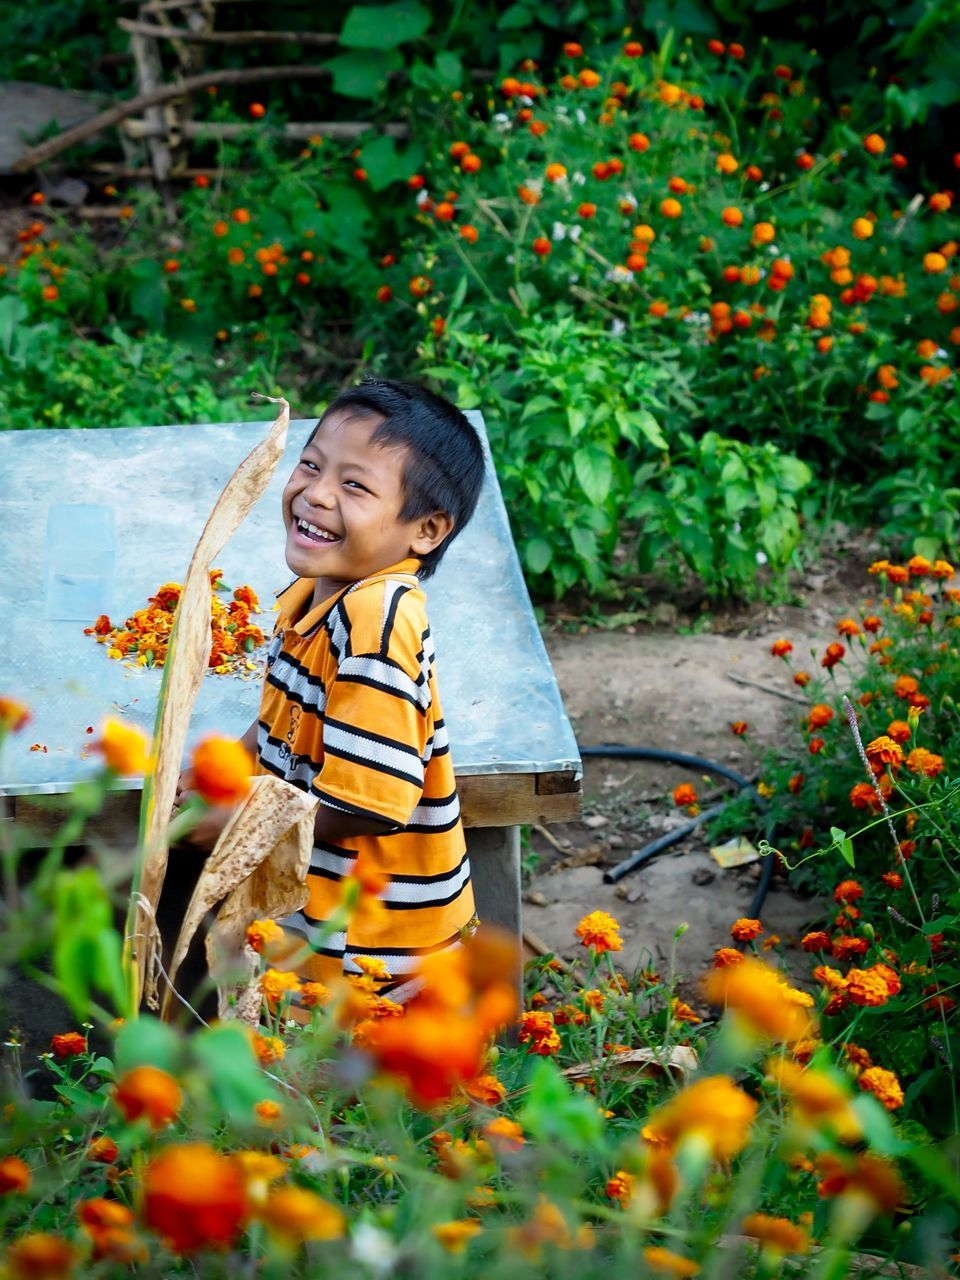 childhood, one person, growth, real people, outdoors, plant, boys, elementary age, day, full length, happiness, smiling, leisure activity, nature, standing, child, flower, one boy only, children only, people